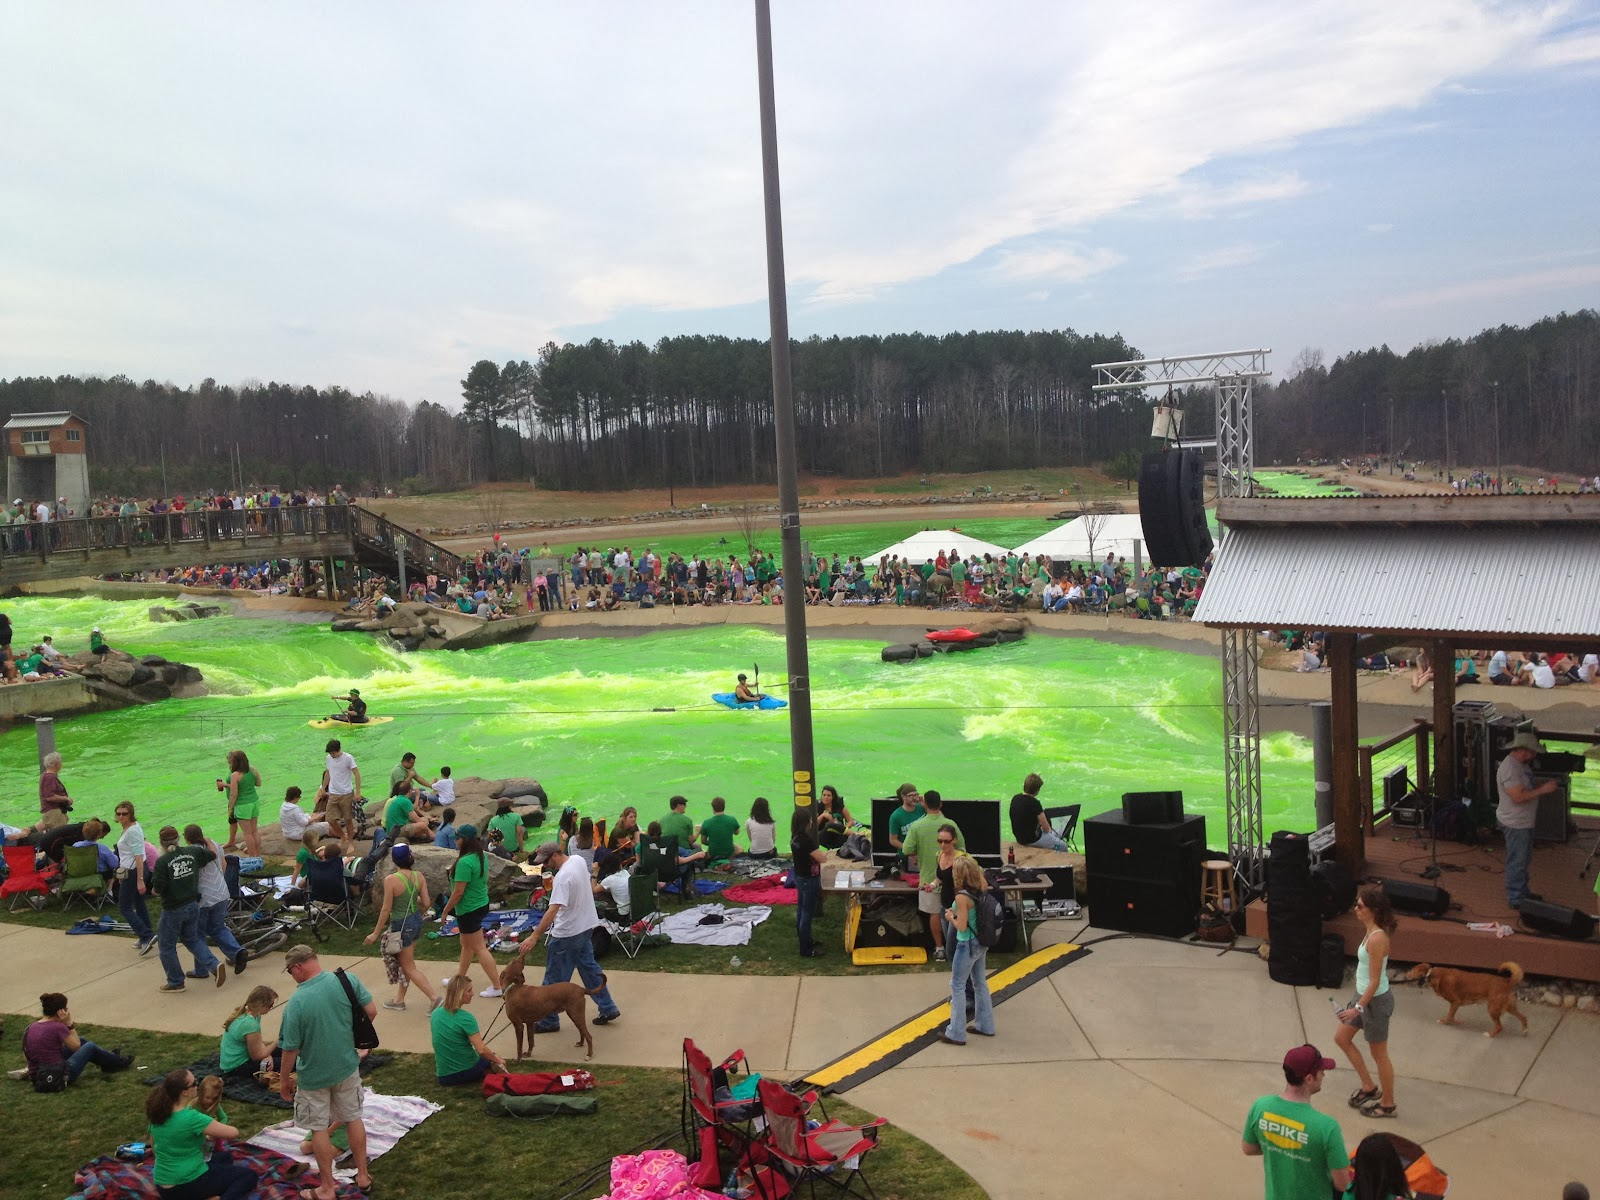 US National Whitewater Center in Charlotte, NC